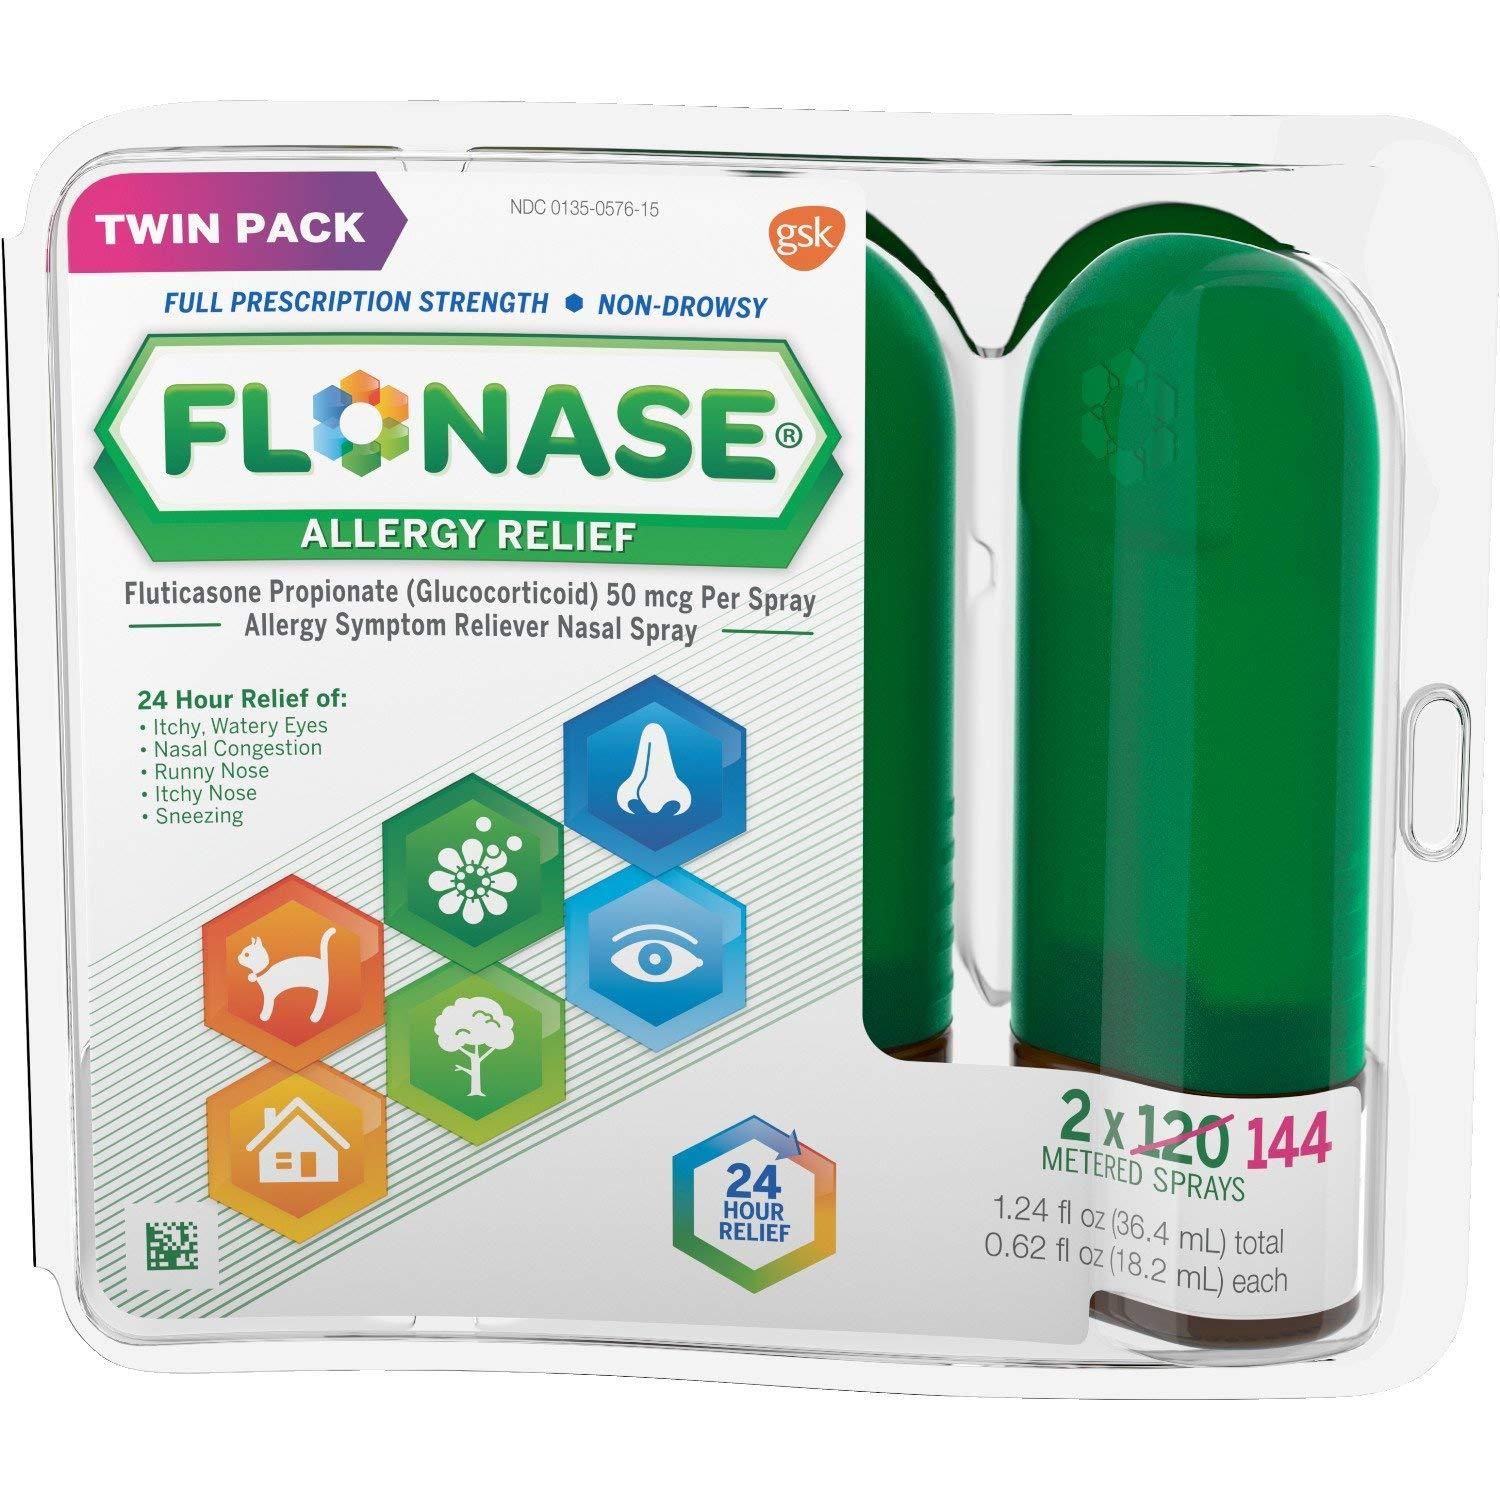 Flonase 24hr Allergy Relief Nasal Spray, Full Prescription Strength, 288 Sprays (twinpack Of 144 Sprays) By Sg Health.